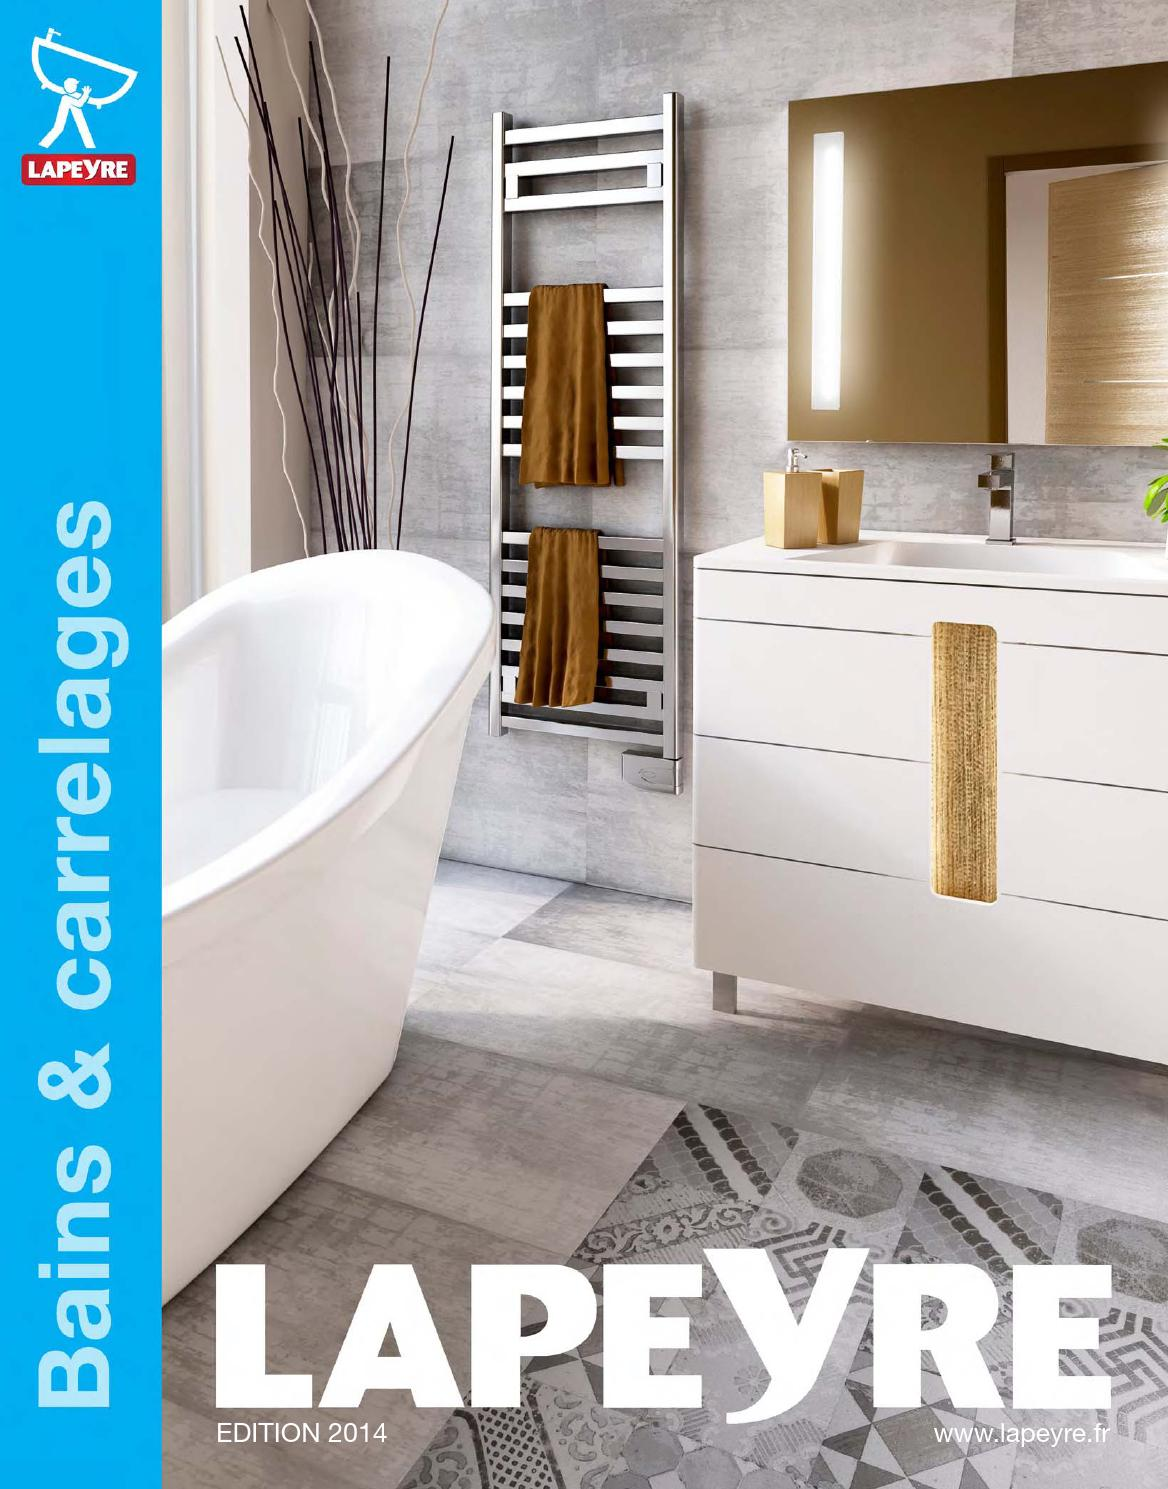 Catalogue lapeyre bains carrelages 2014 by joe monroe for Carrelage lapeyre salle de bain